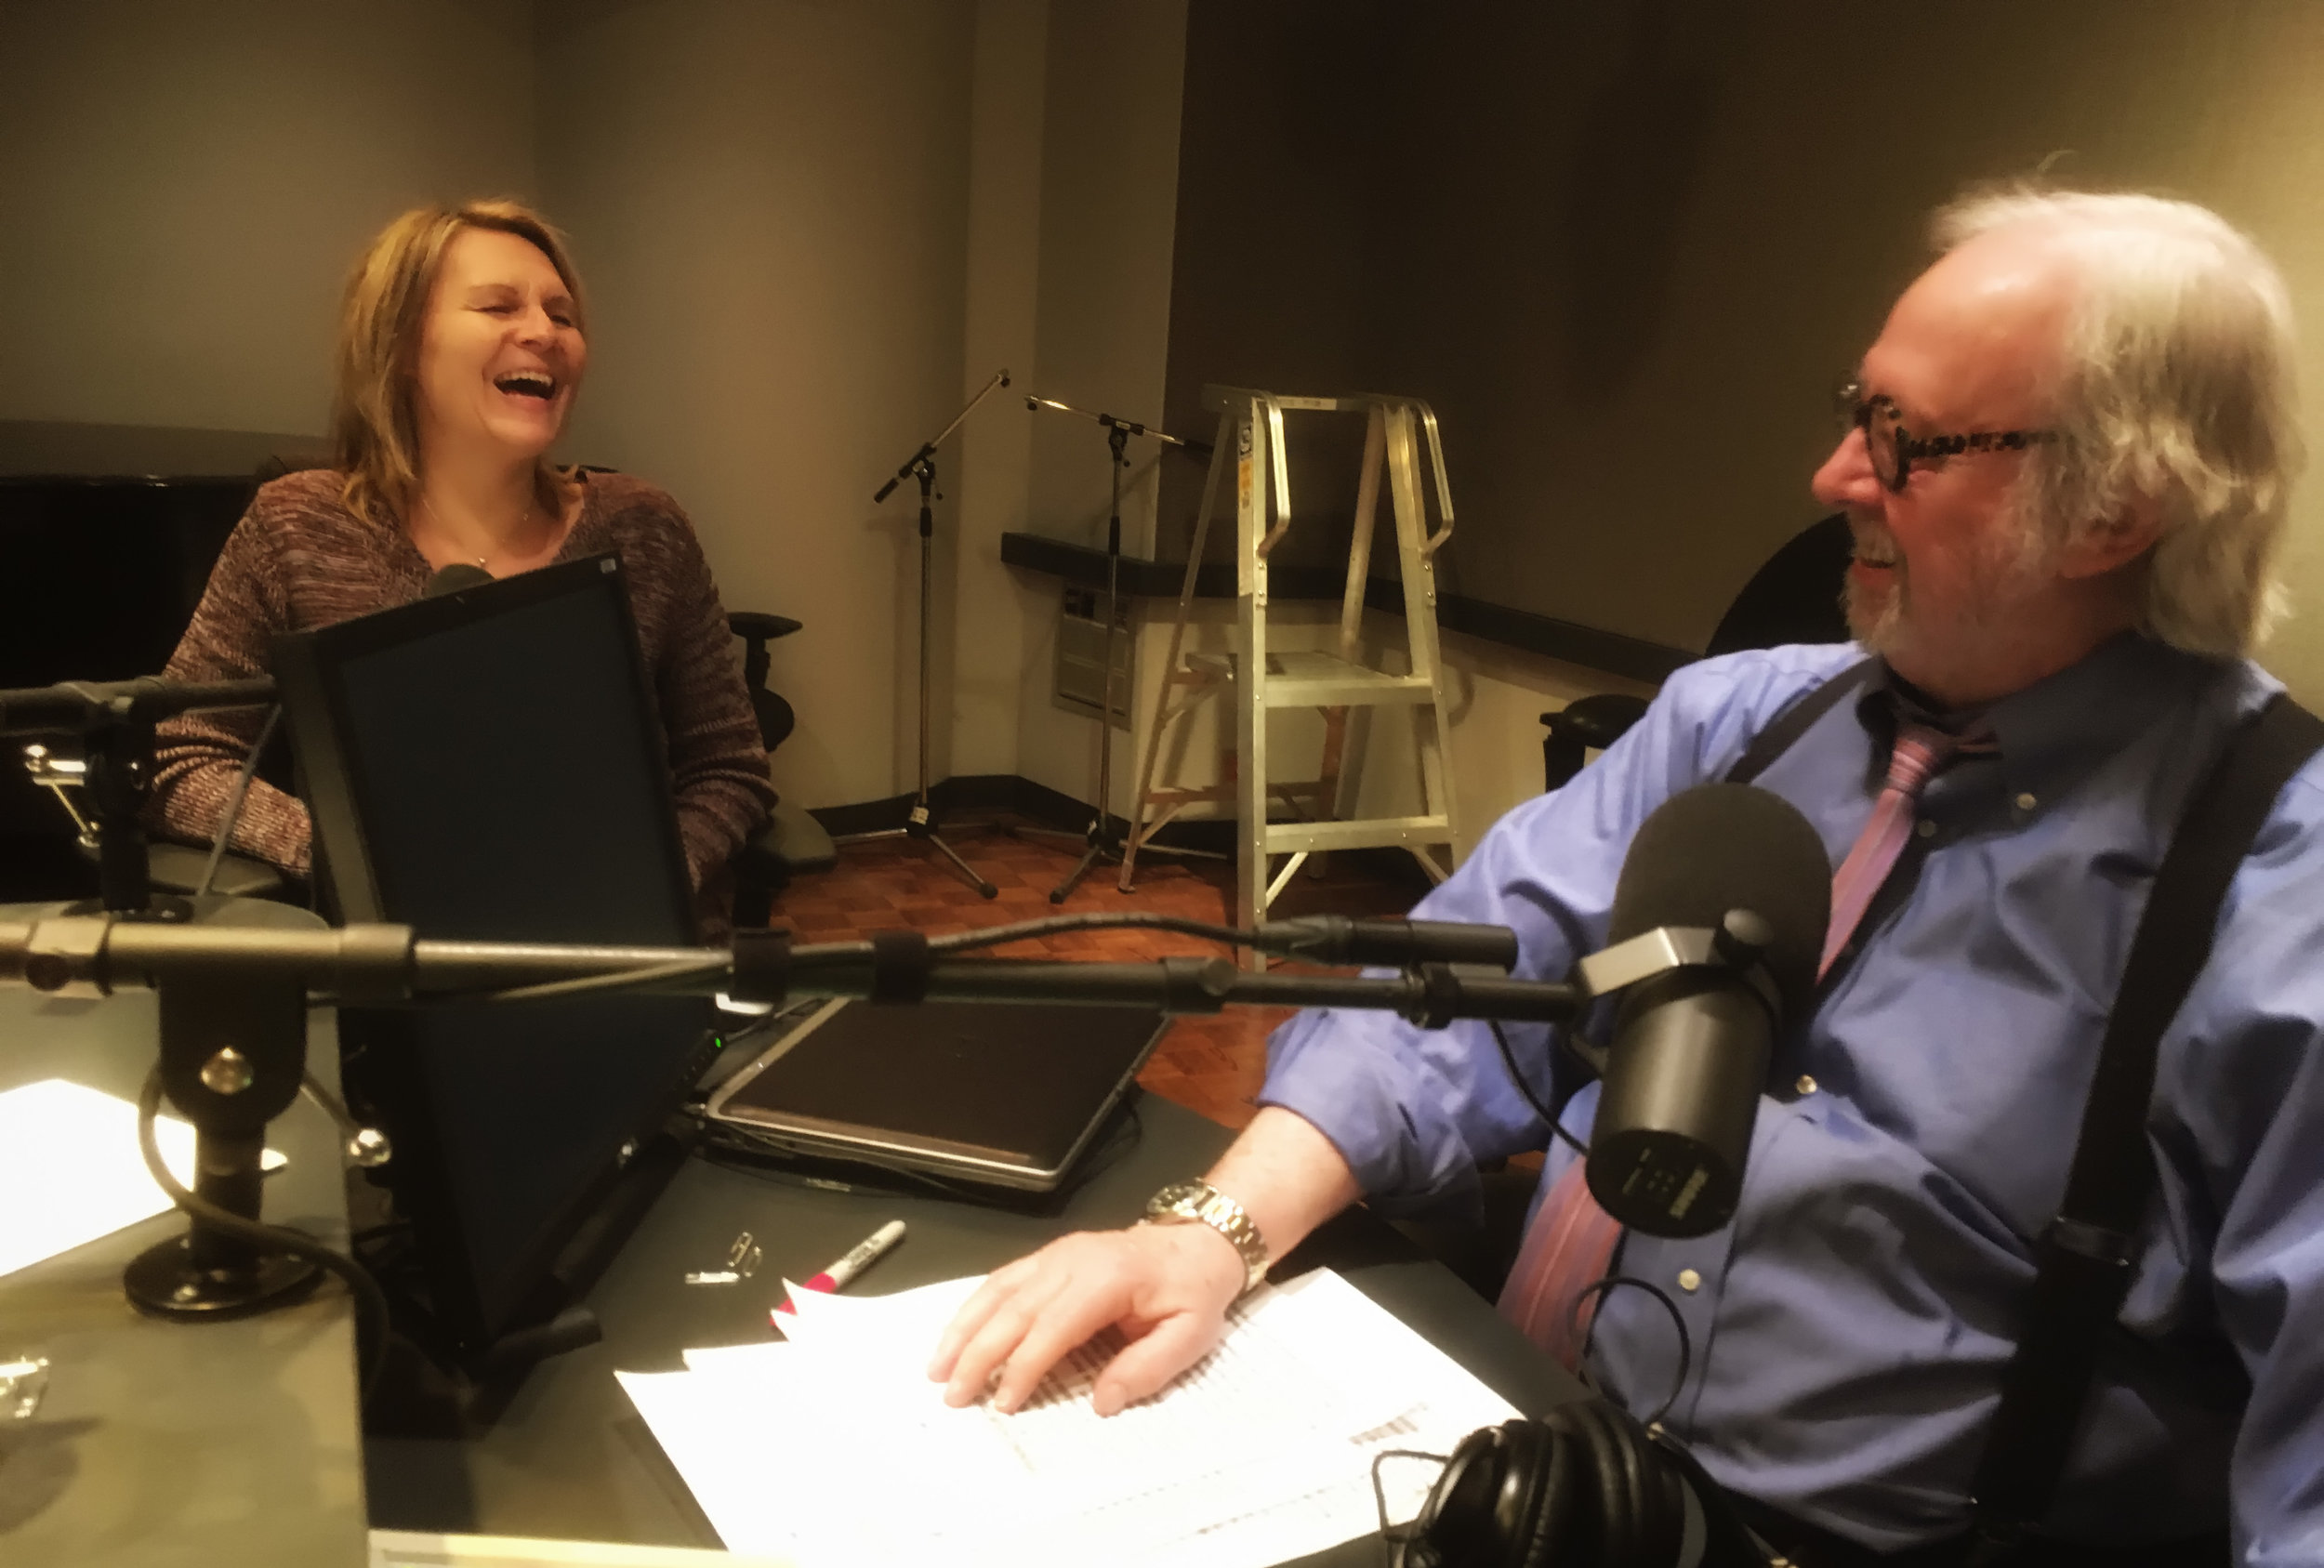 Bonnie with Michael Enright, the host of The Sunday Edition on CBC Radio One.